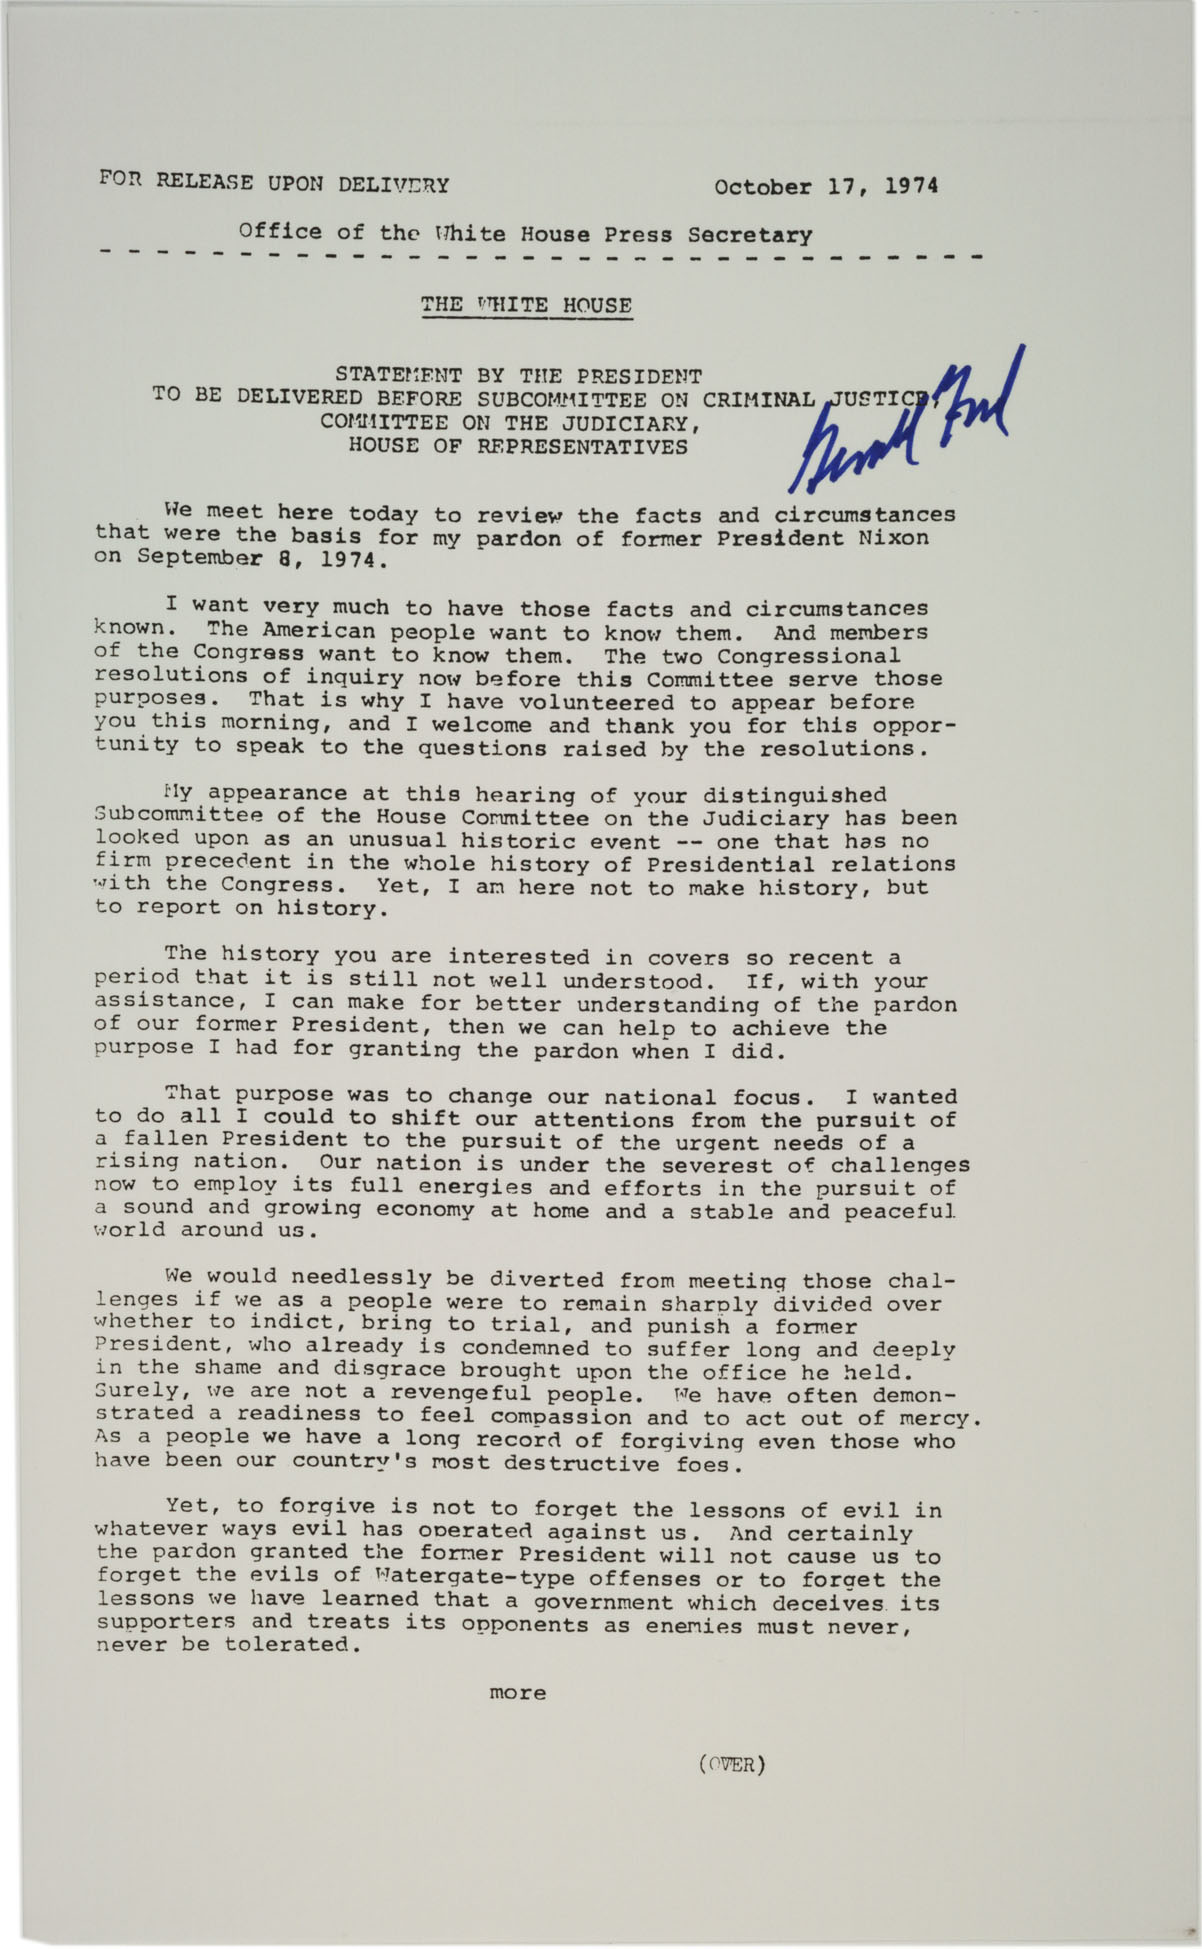 president ford s statement on pardoning richard nixon 1974 the gerald ford s statement before subcommittee on criminal justice regarding his pardon of nixon 17